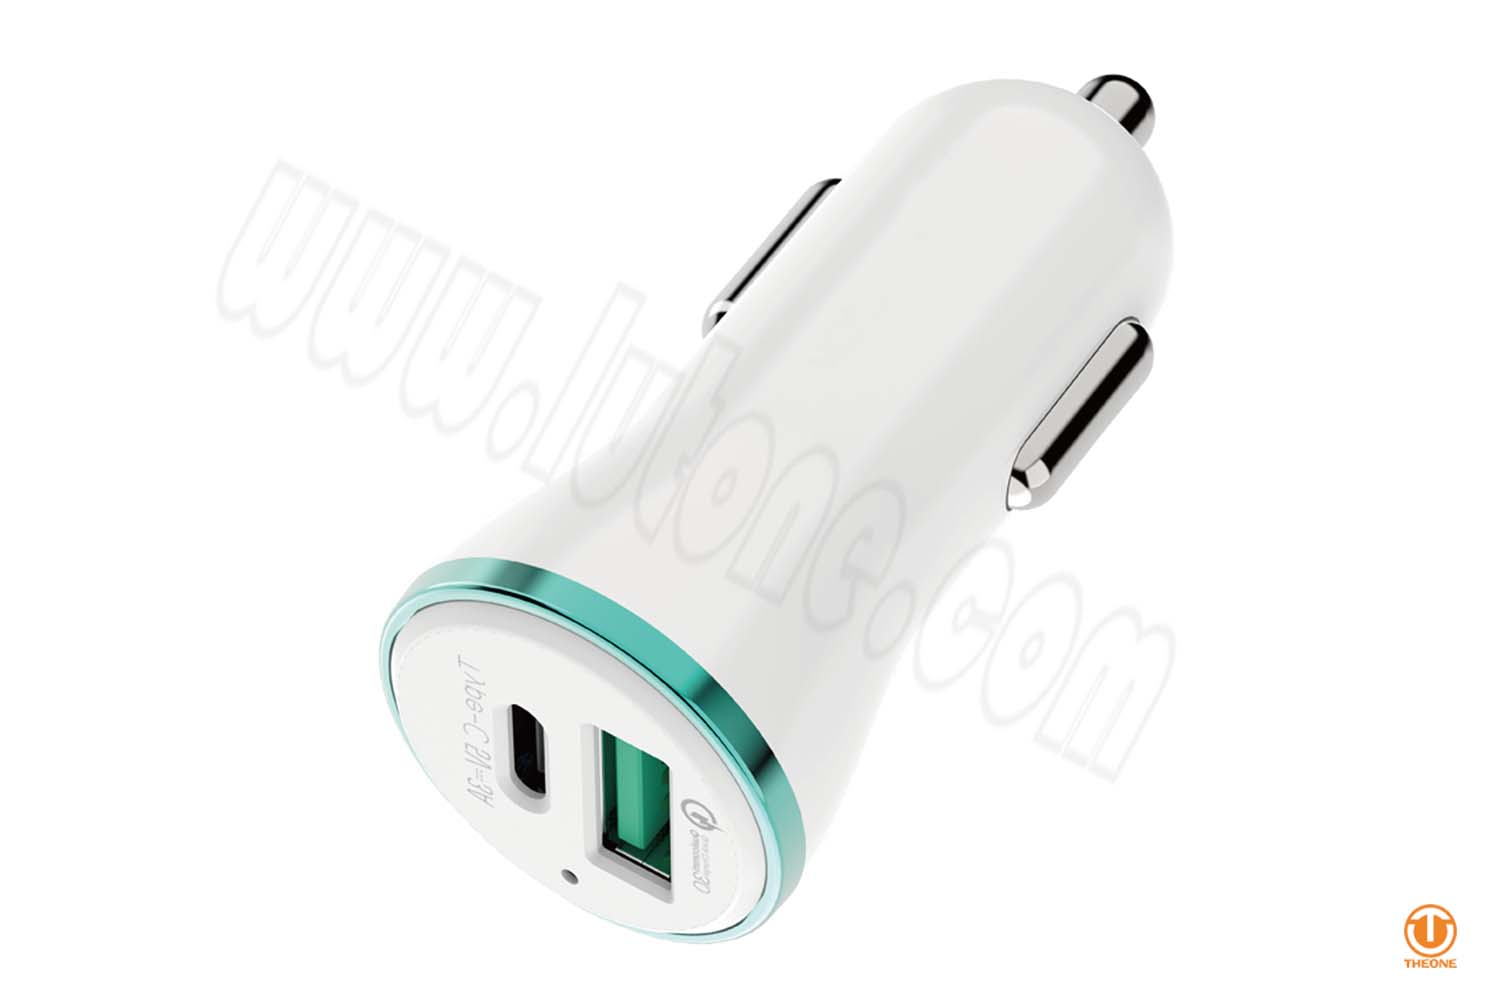 tc33c-1 typec usb car charger quick charger3.0